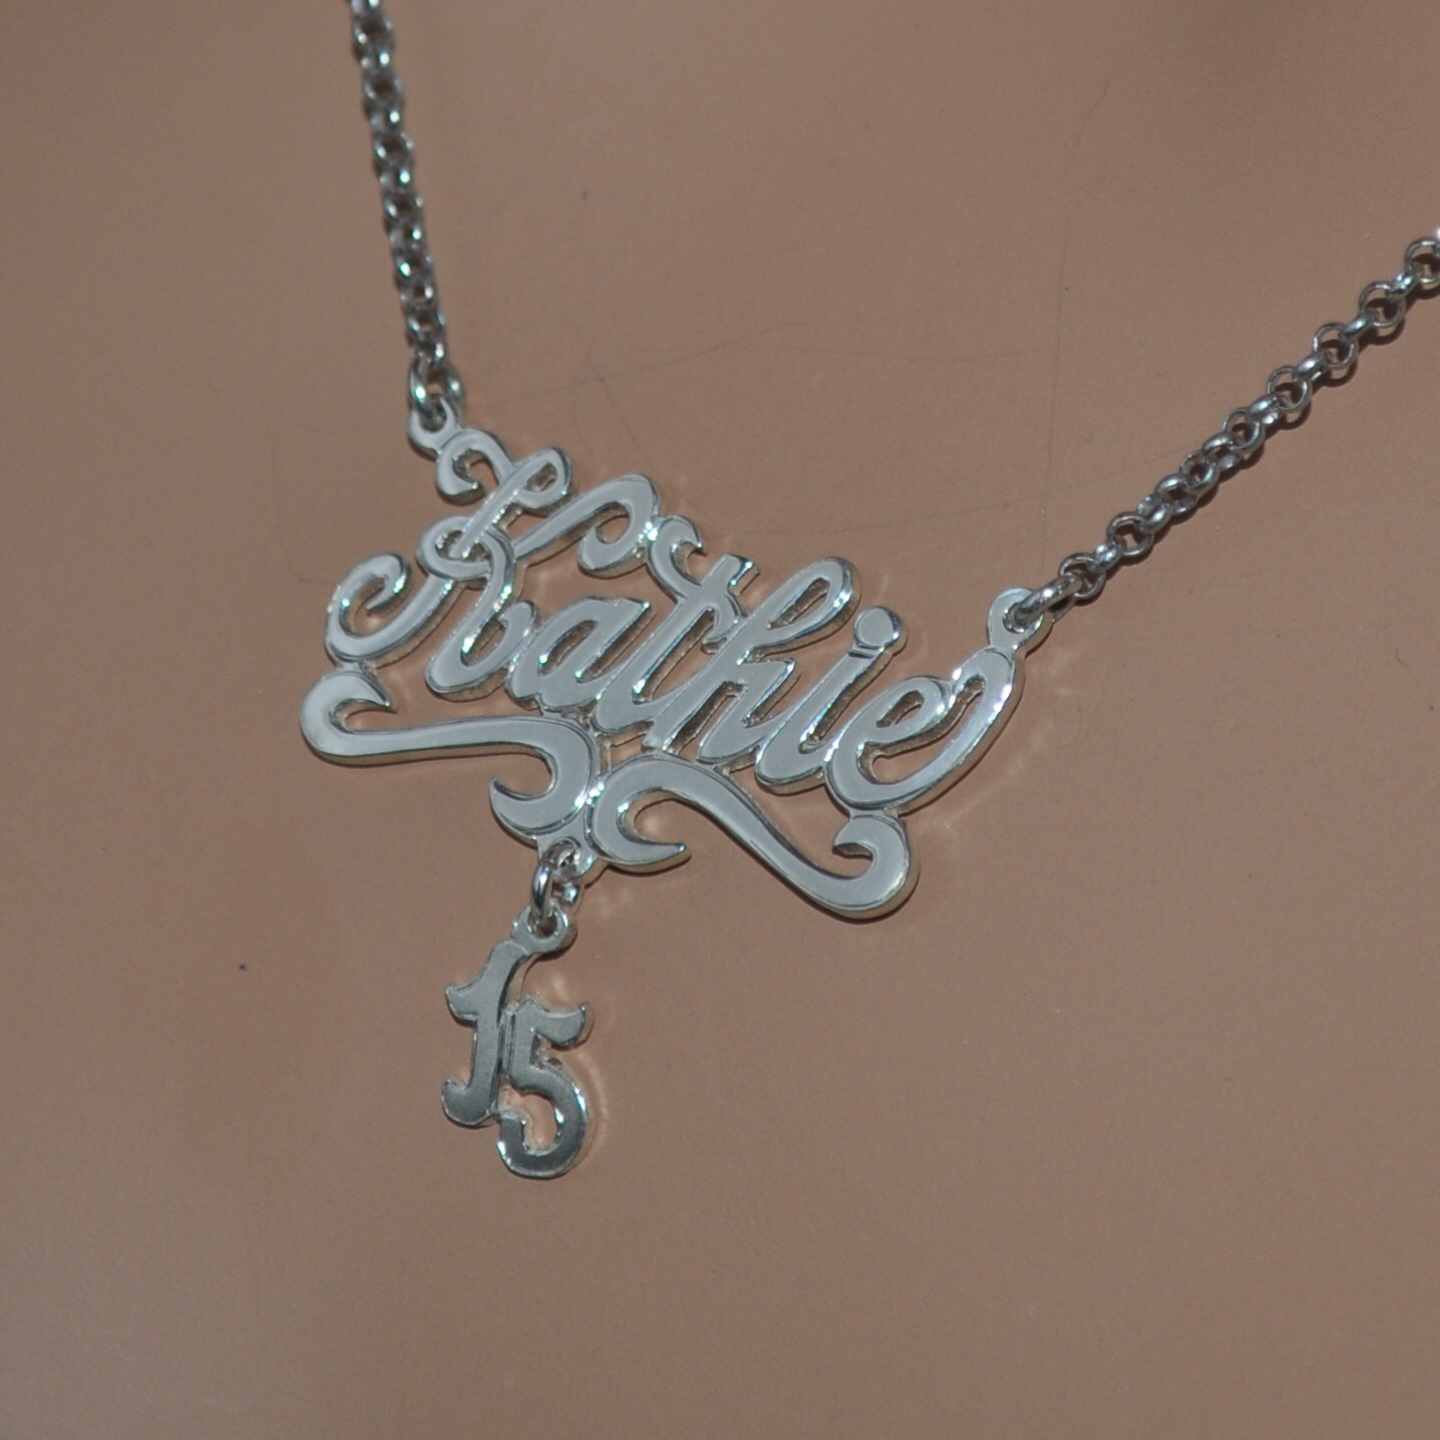 jewellery name sydney buchanan heartstring fine heartstrings necklace inspirational and